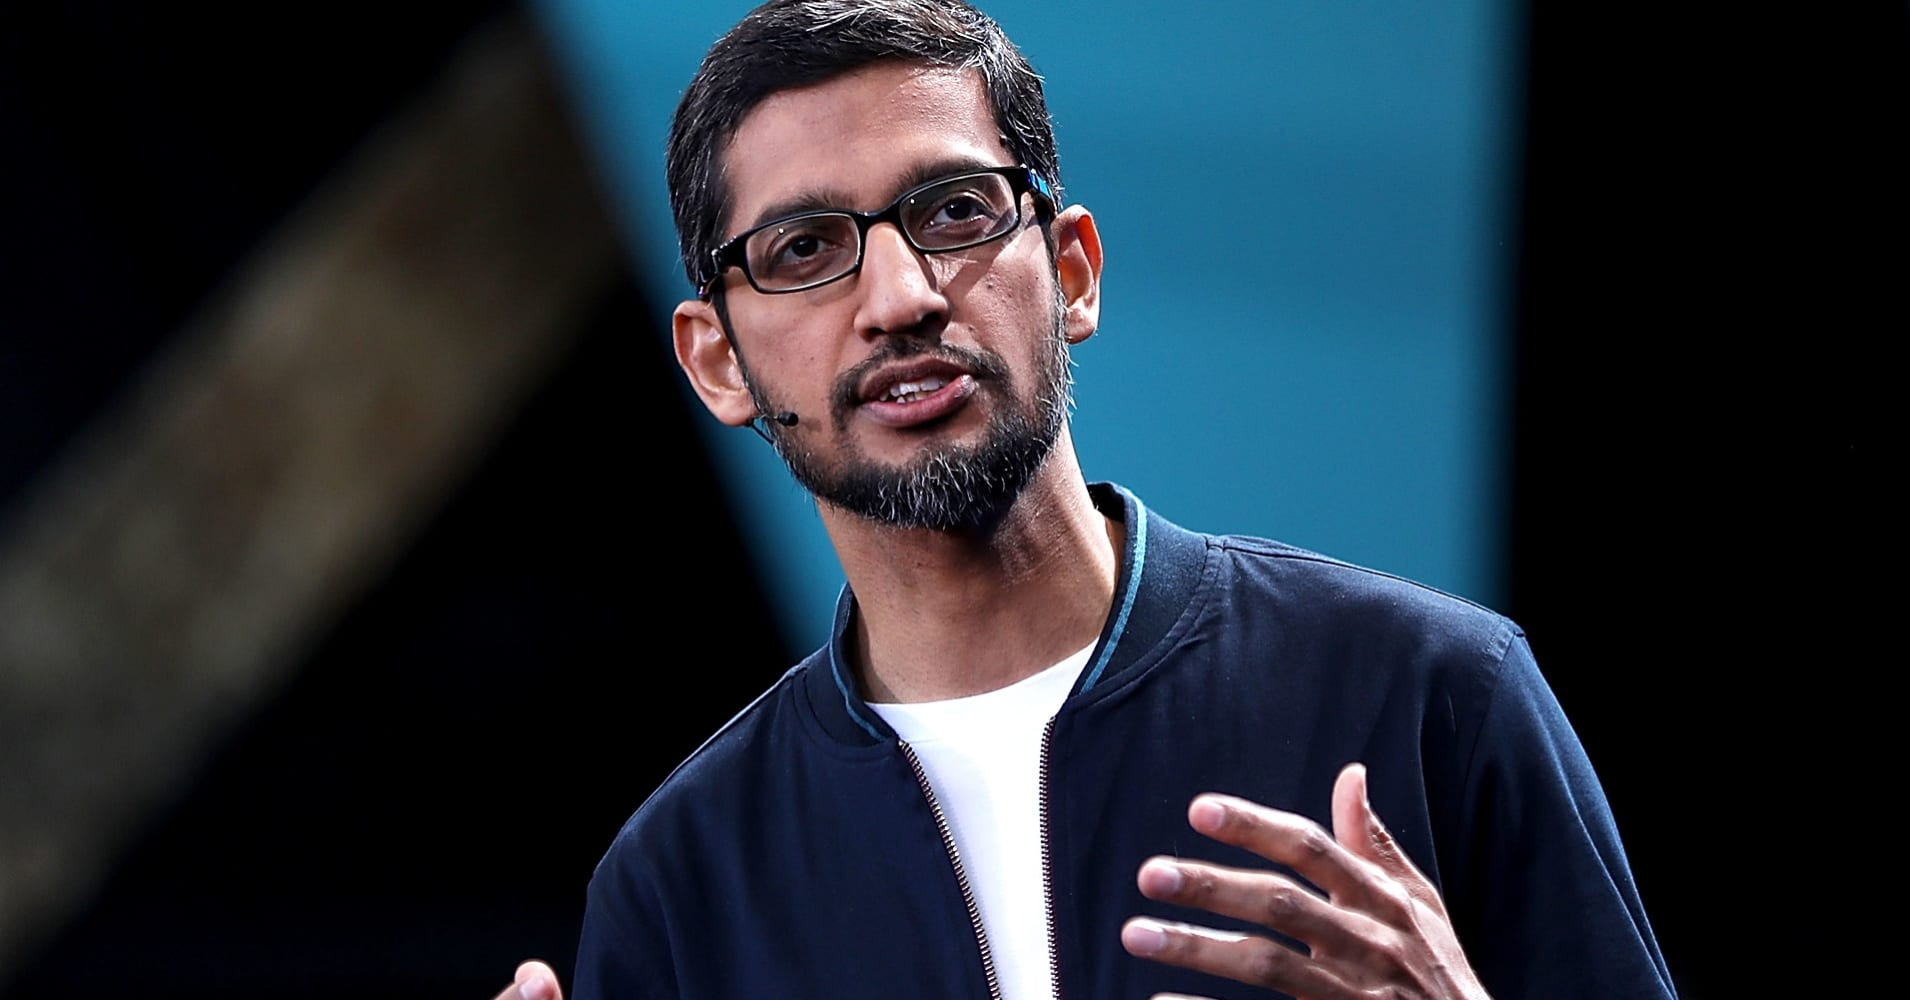 'I don't regret' firing man who wrote anti-diversity memo: Pichai